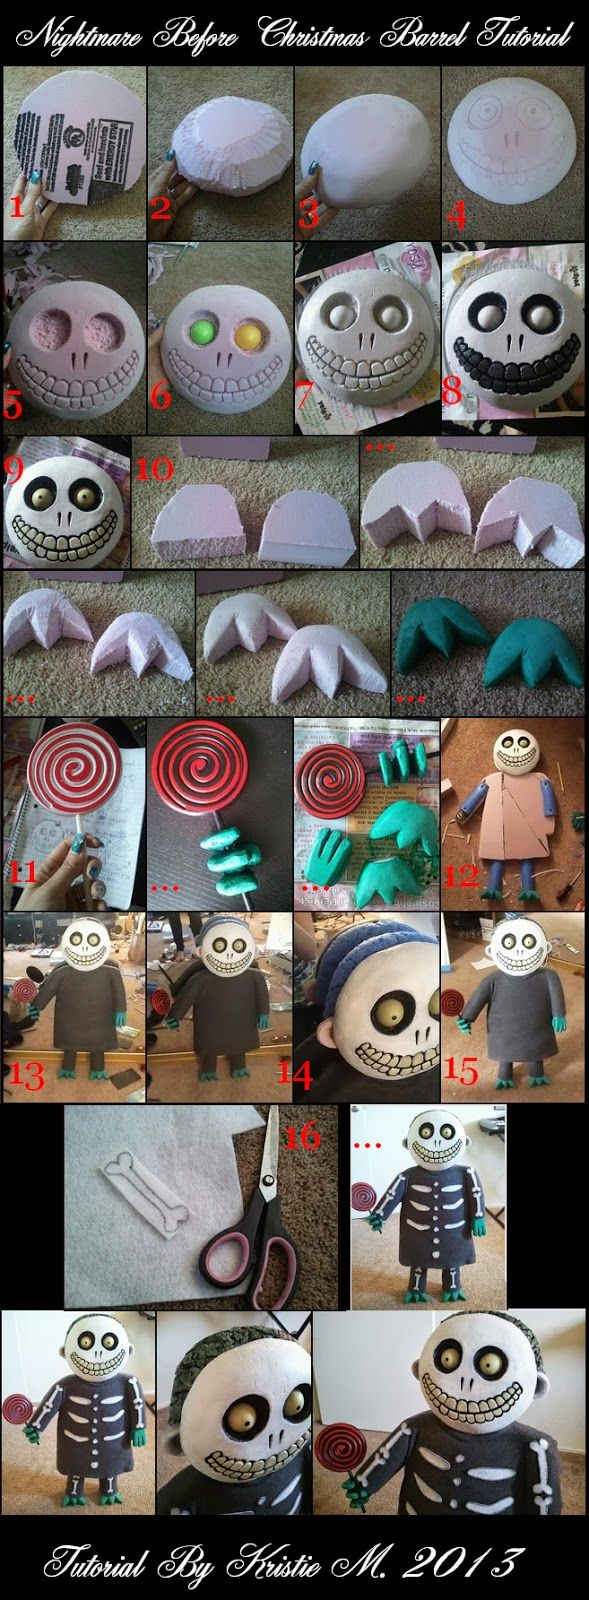 Best 25+ Nightmare before christmas decorations ideas on Pinterest ...